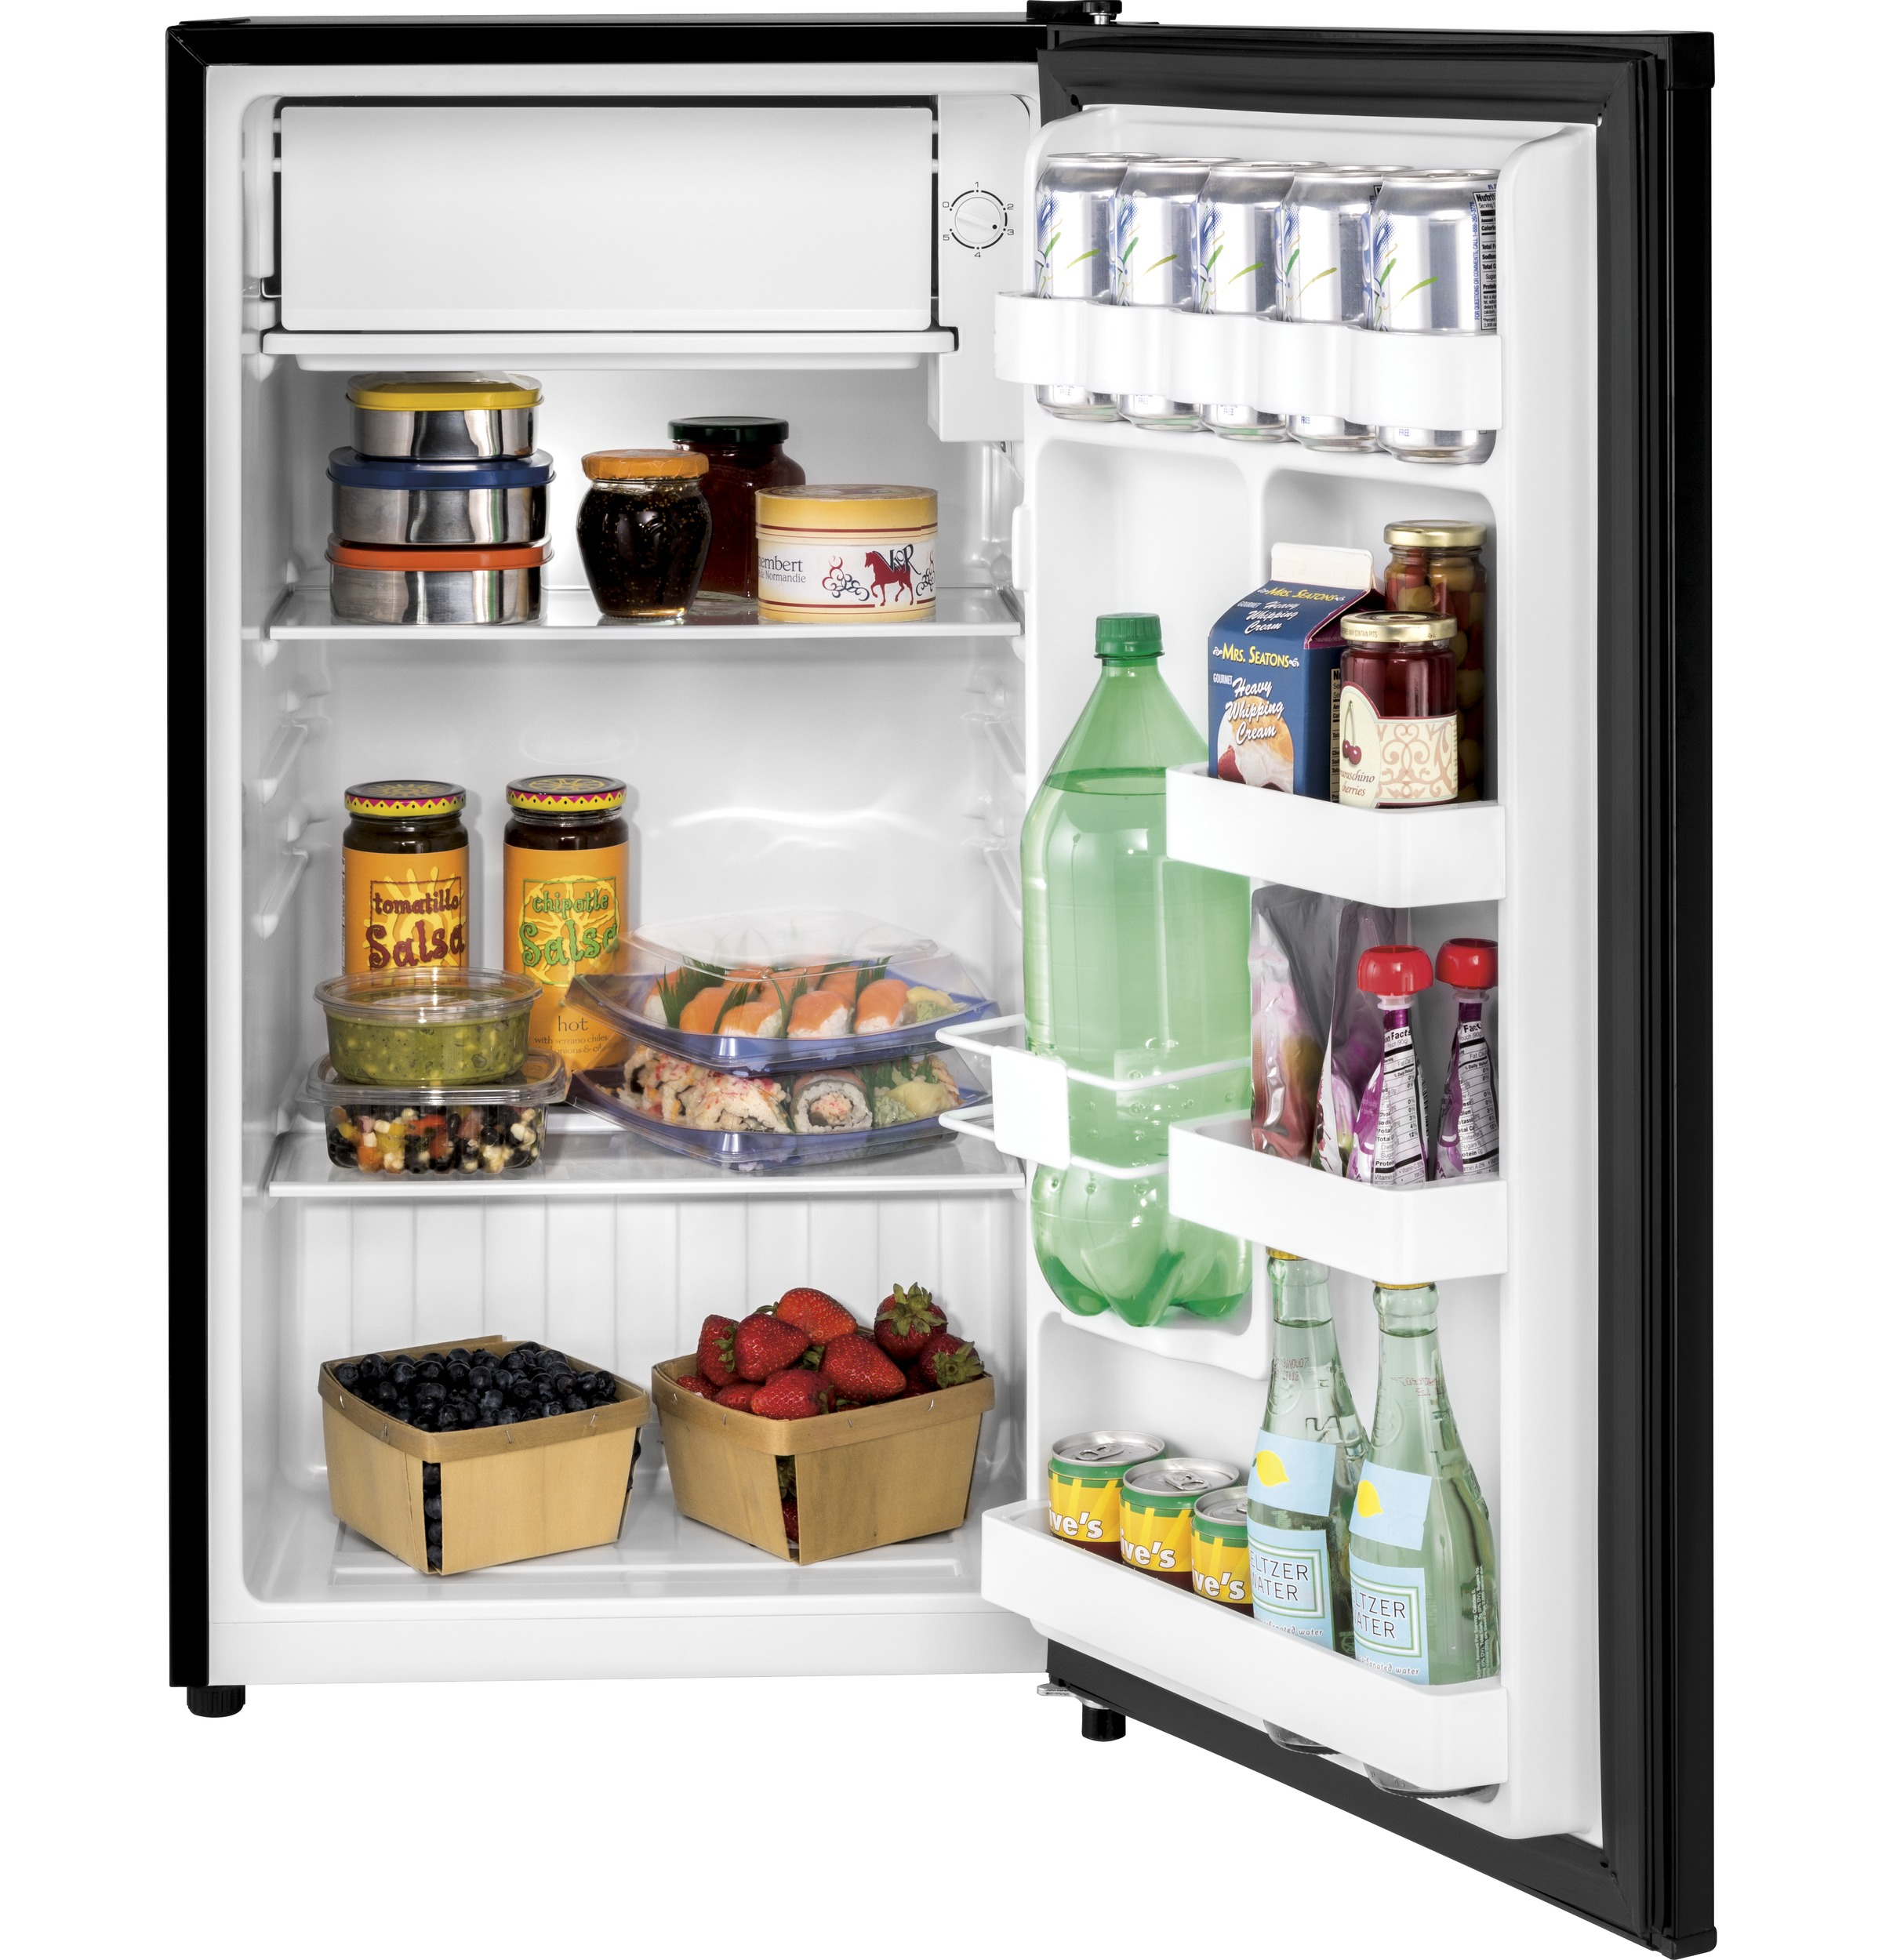 Model: HC33SW20RB | 3.3 Cu. Ft. Compact Refrigerator